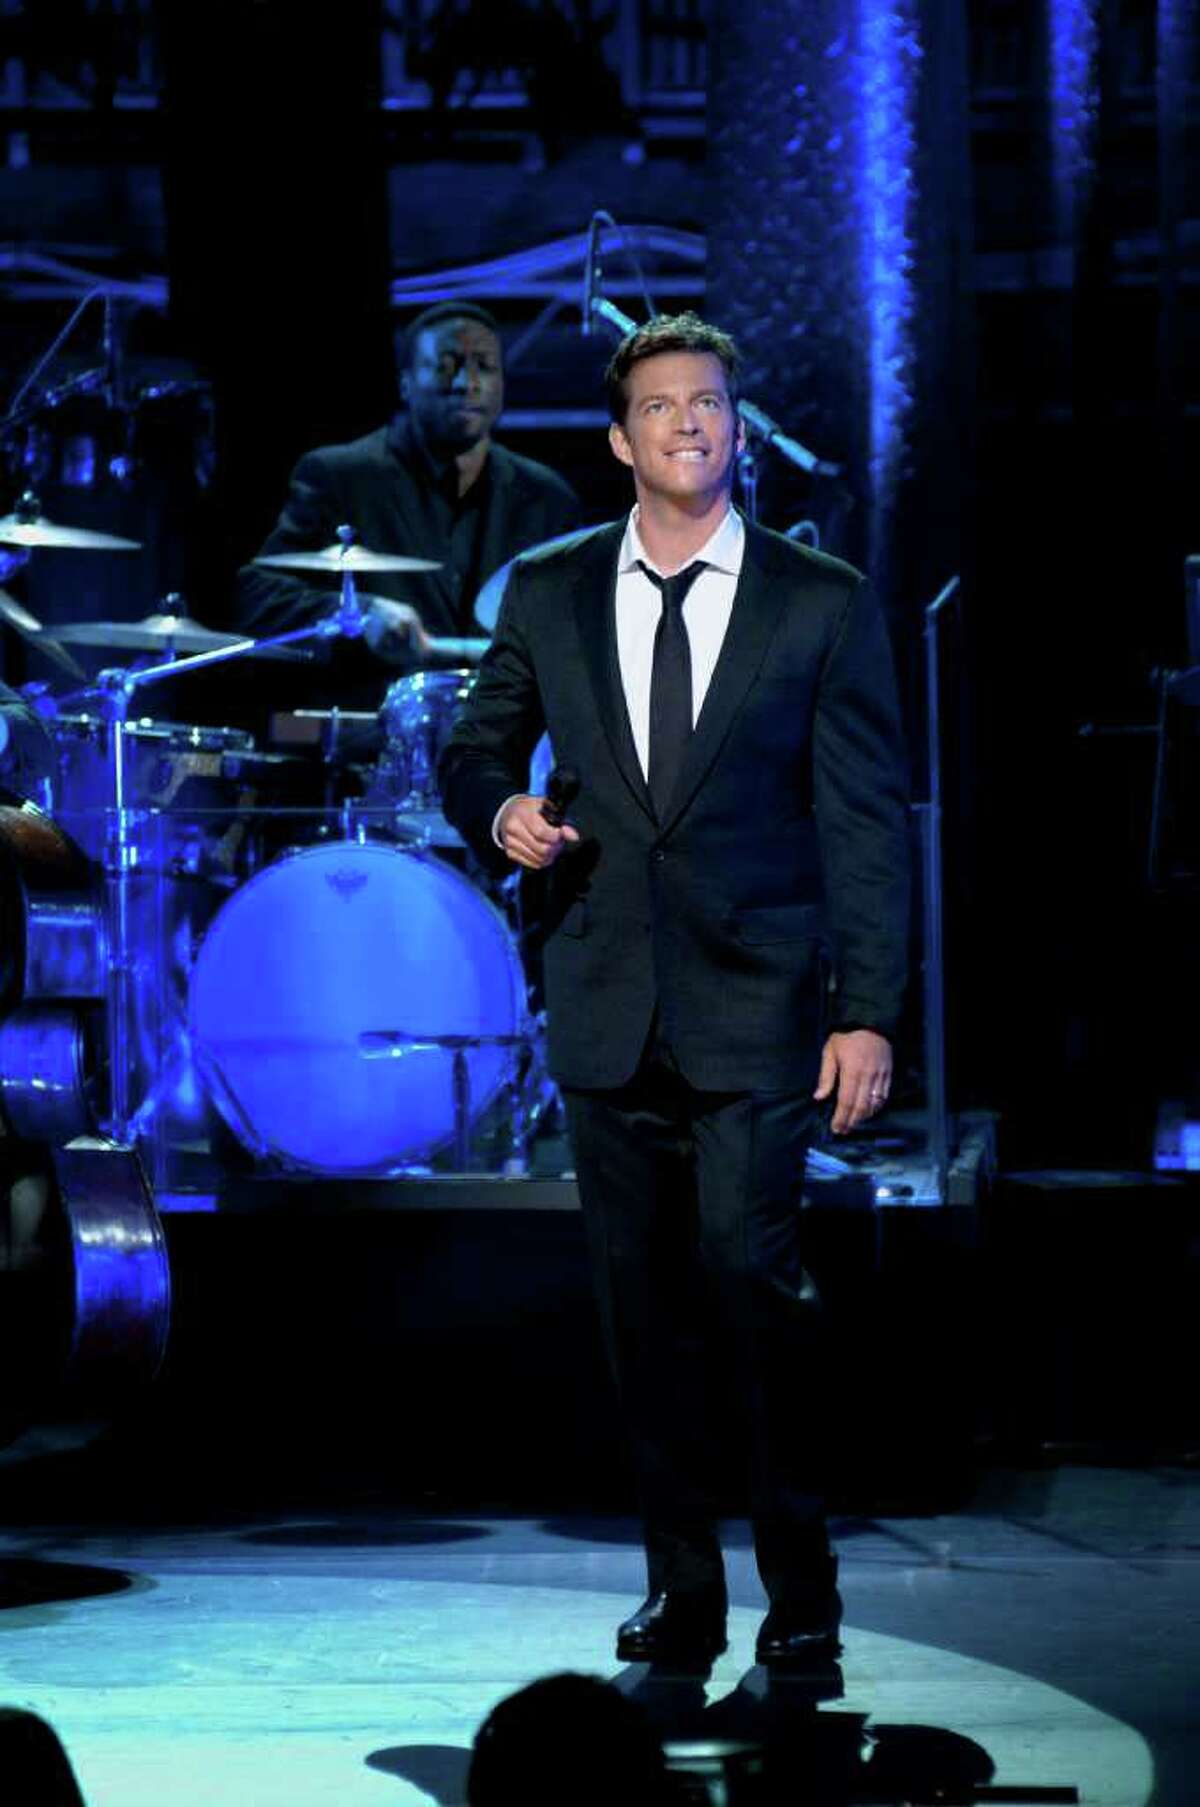 Harry Connick Jr. released a live concert album March 1, 2011 called On Broadway. The New Orleans native singer, pianist and movie star performs in Houston March 29, 2011 with the Society for the Performing Arts.